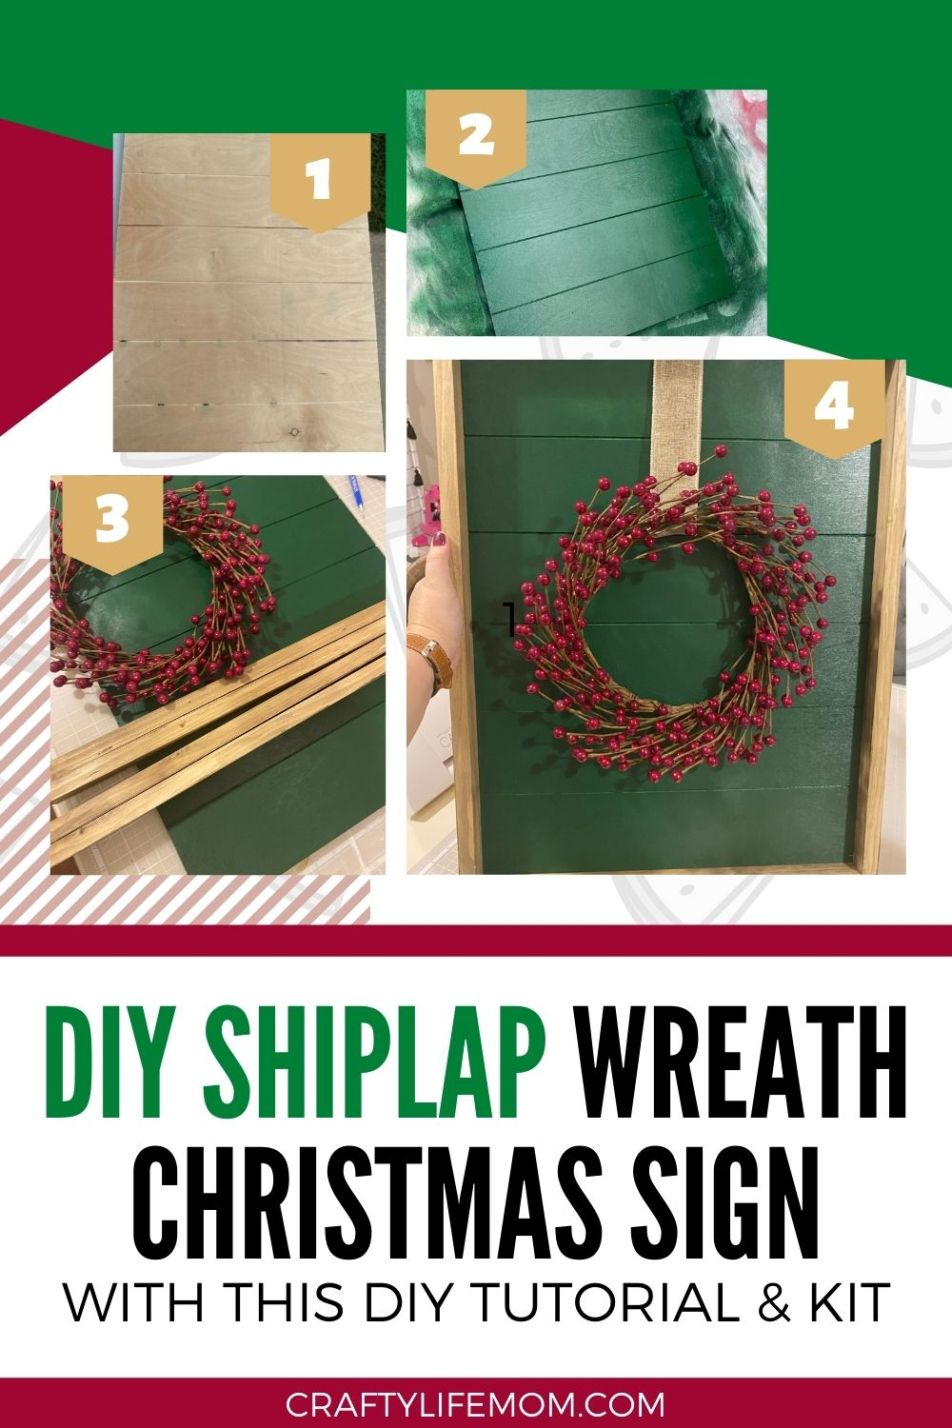 Create Your Own Christmas Wreath Shiplap Sign with a berry wreath using this DIY Kit.The kits come with everything you need to paint and make your own shiplap sign.Display the sign within your home decor for a unique Christmas wreath display.